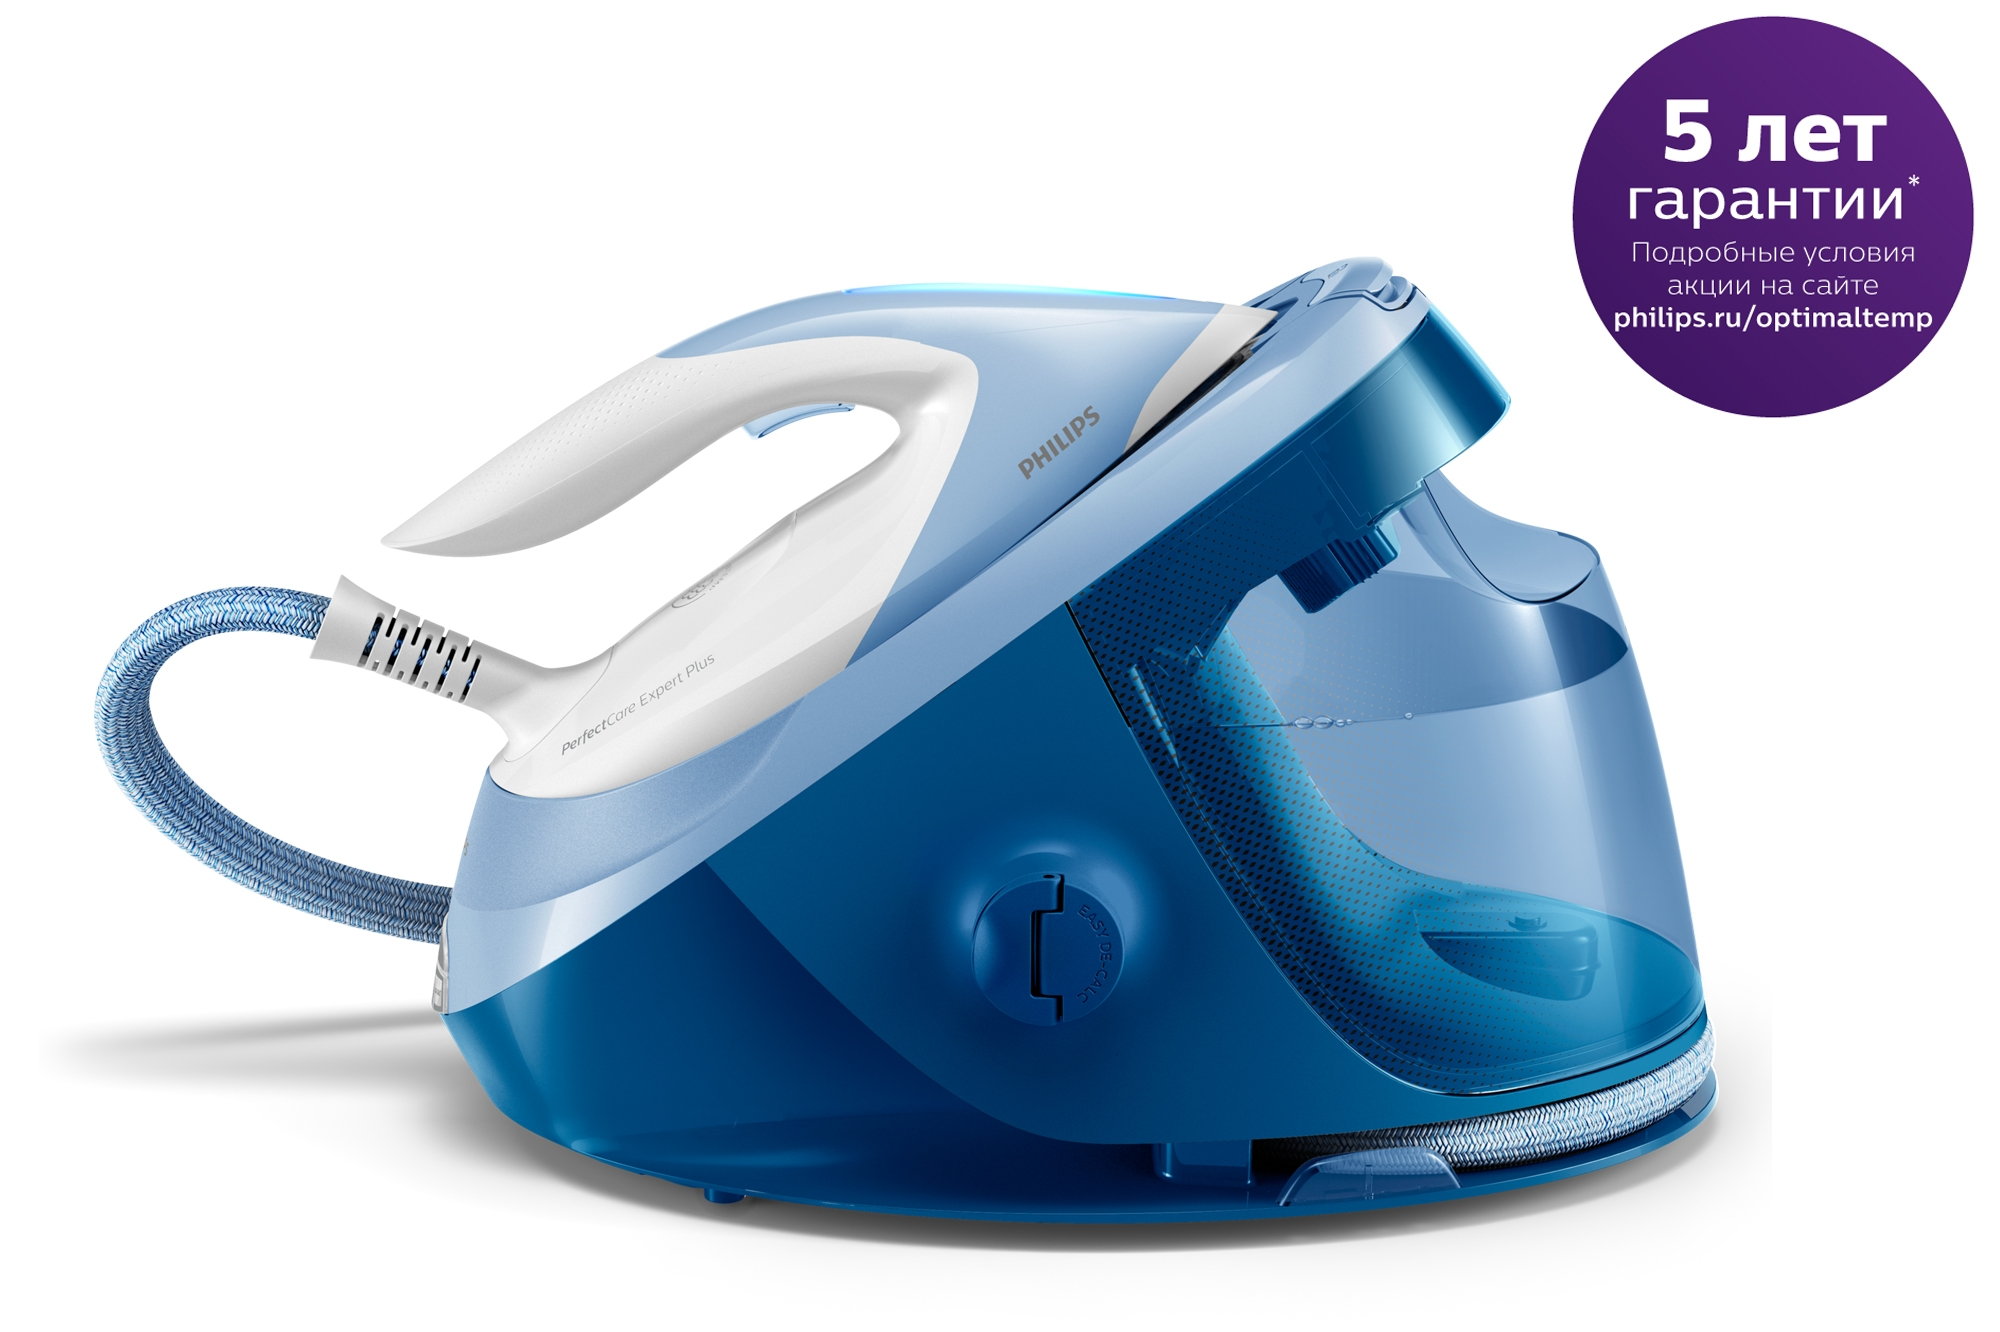 Парогенератор Philips PerfectCare Expert Plus GC8942 GC8942/20 фото